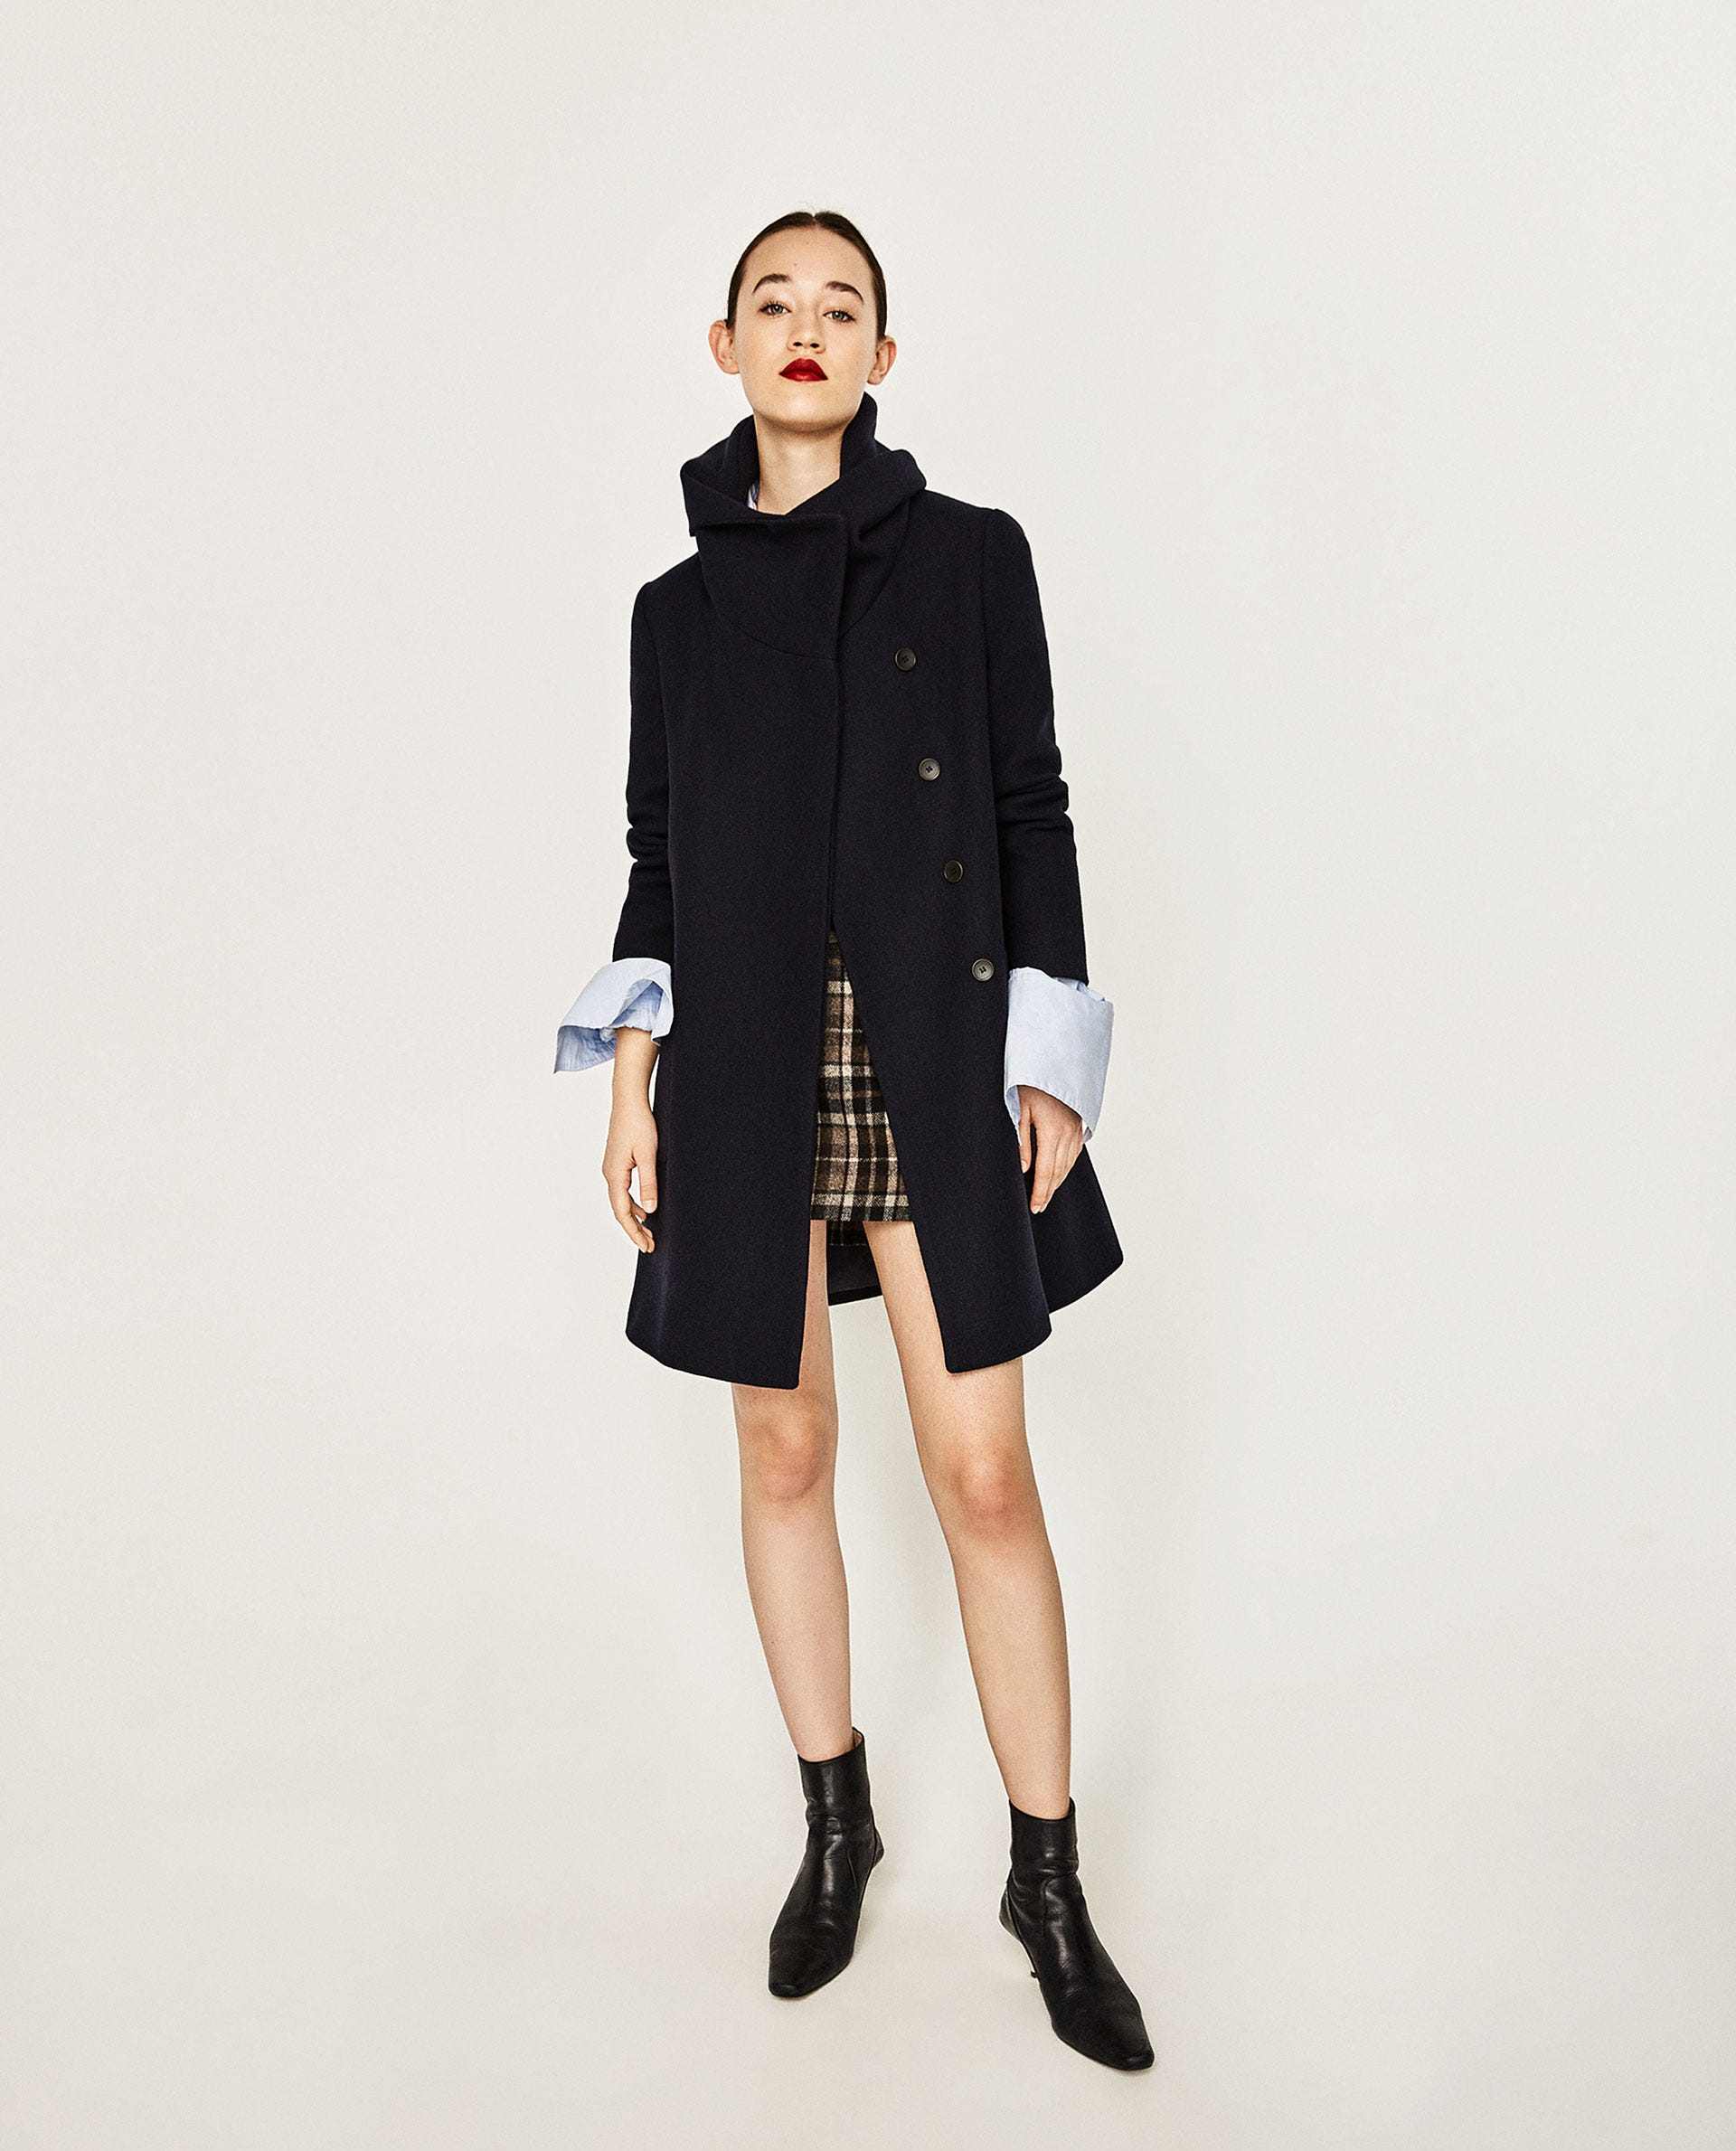 914aae76 Zara Winter New Arrivals - What To Buy Now